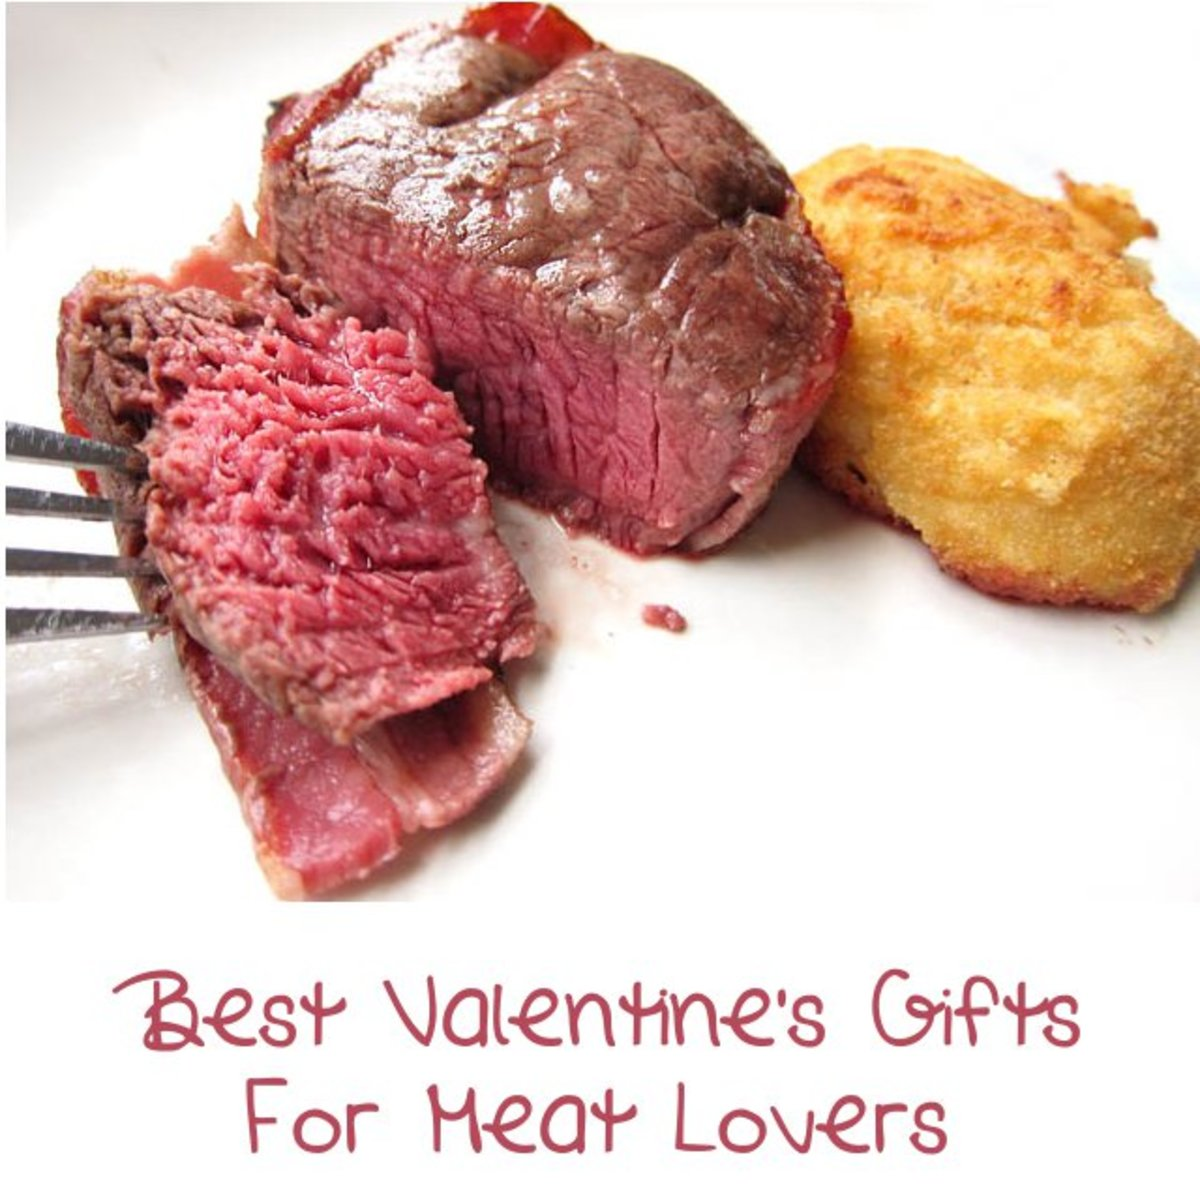 There's a romance to food, and people who love meat deserve to enjoy it this Valentine's Day! So why not give the gift of meat to your honey?